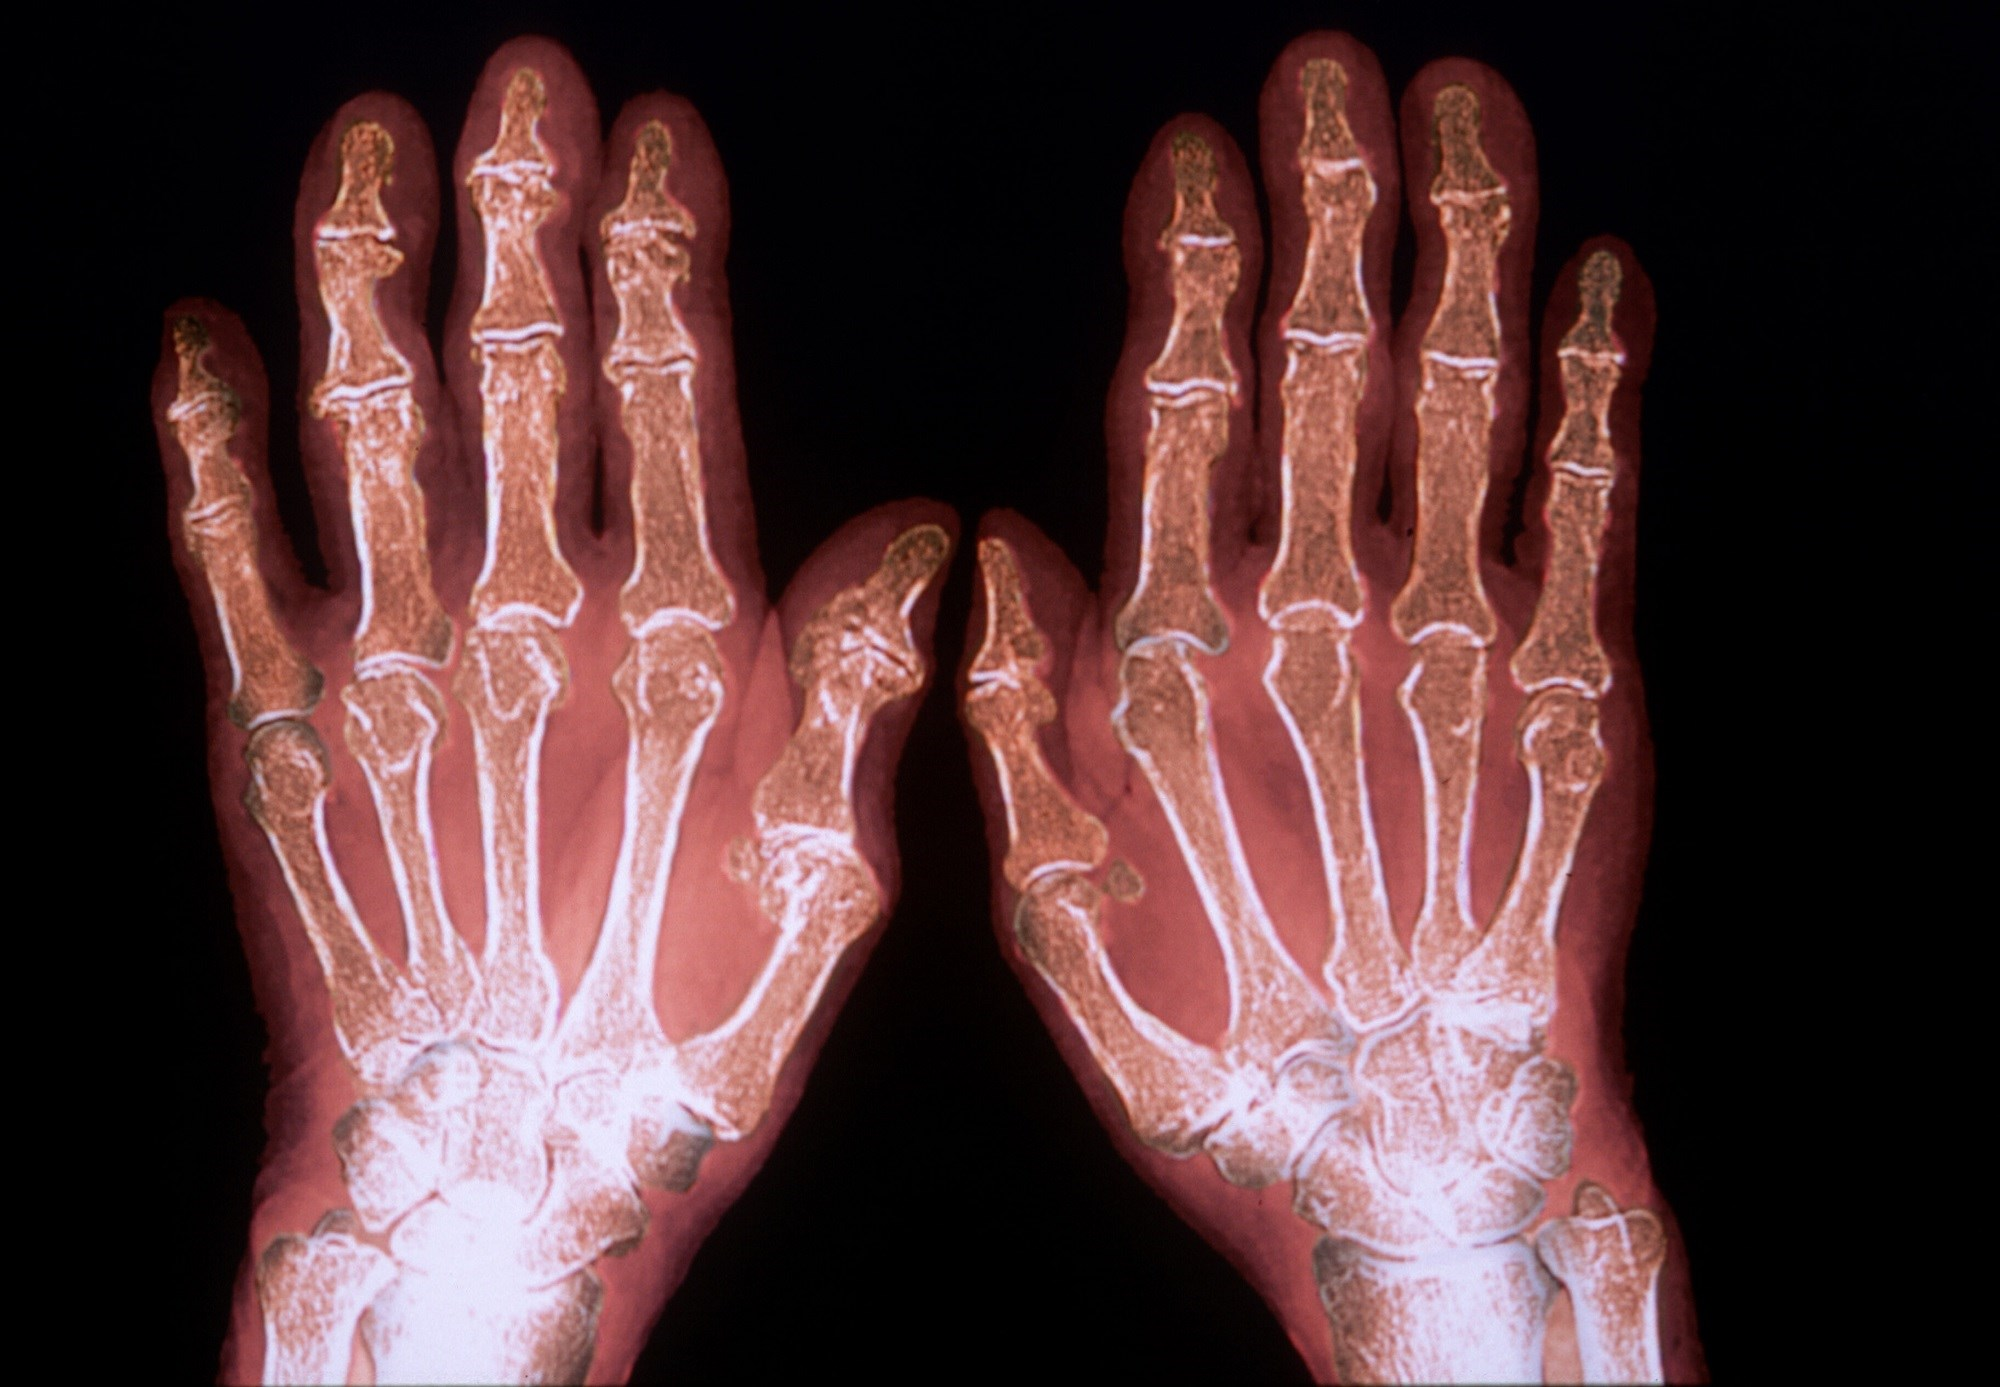 Targeting Remission vs Low Disease Activity in Rheumatoid Arthritis